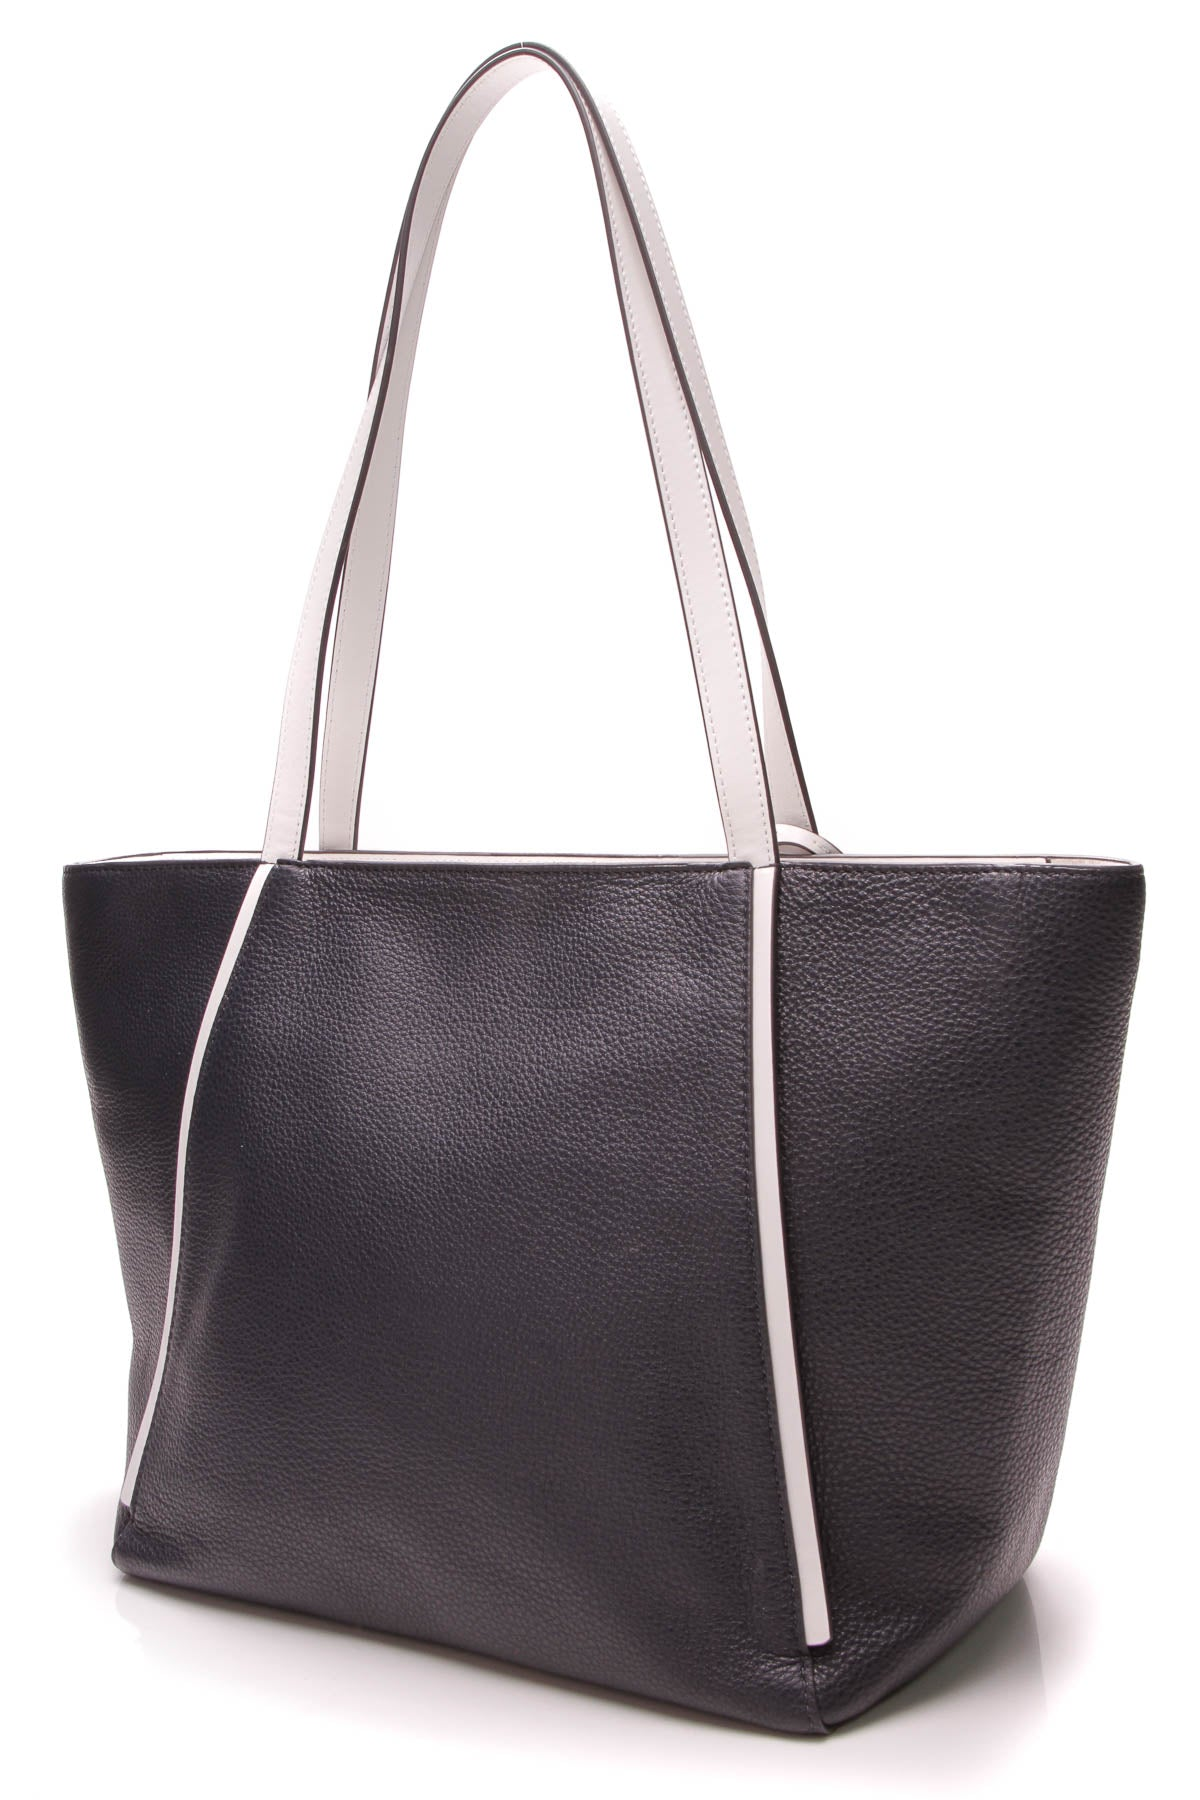 10a02ee0168f Michael Kors Whitney Large Tote Bag - Navy – Couture USA